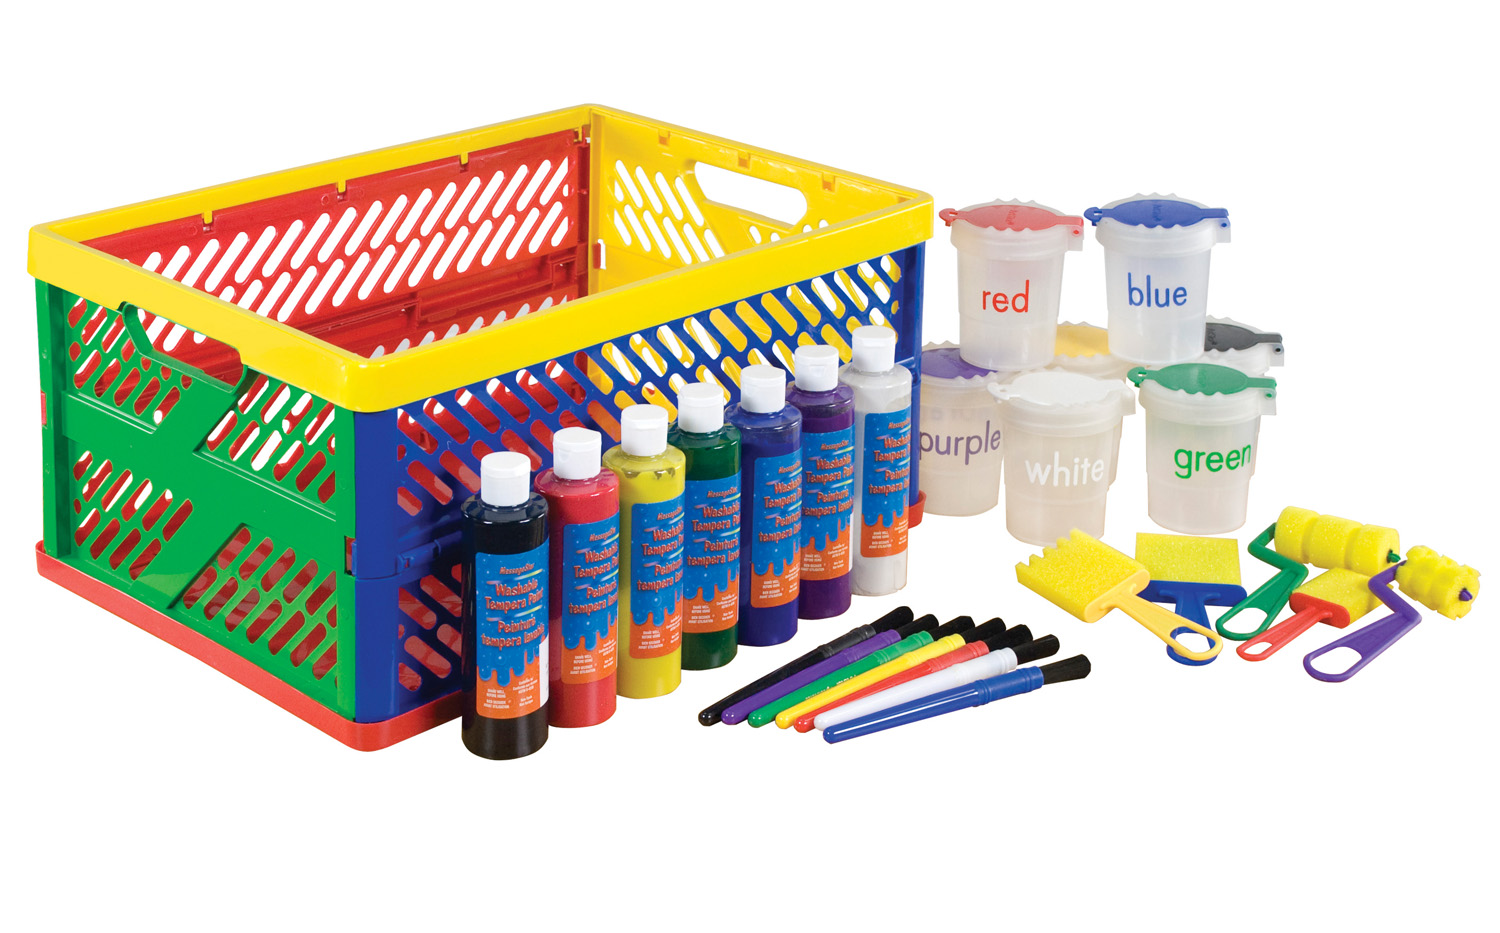 Ecr4kids Toddlers Large Paint Crate Set  W/ Collapsible Colors -27 Piece at Sears.com